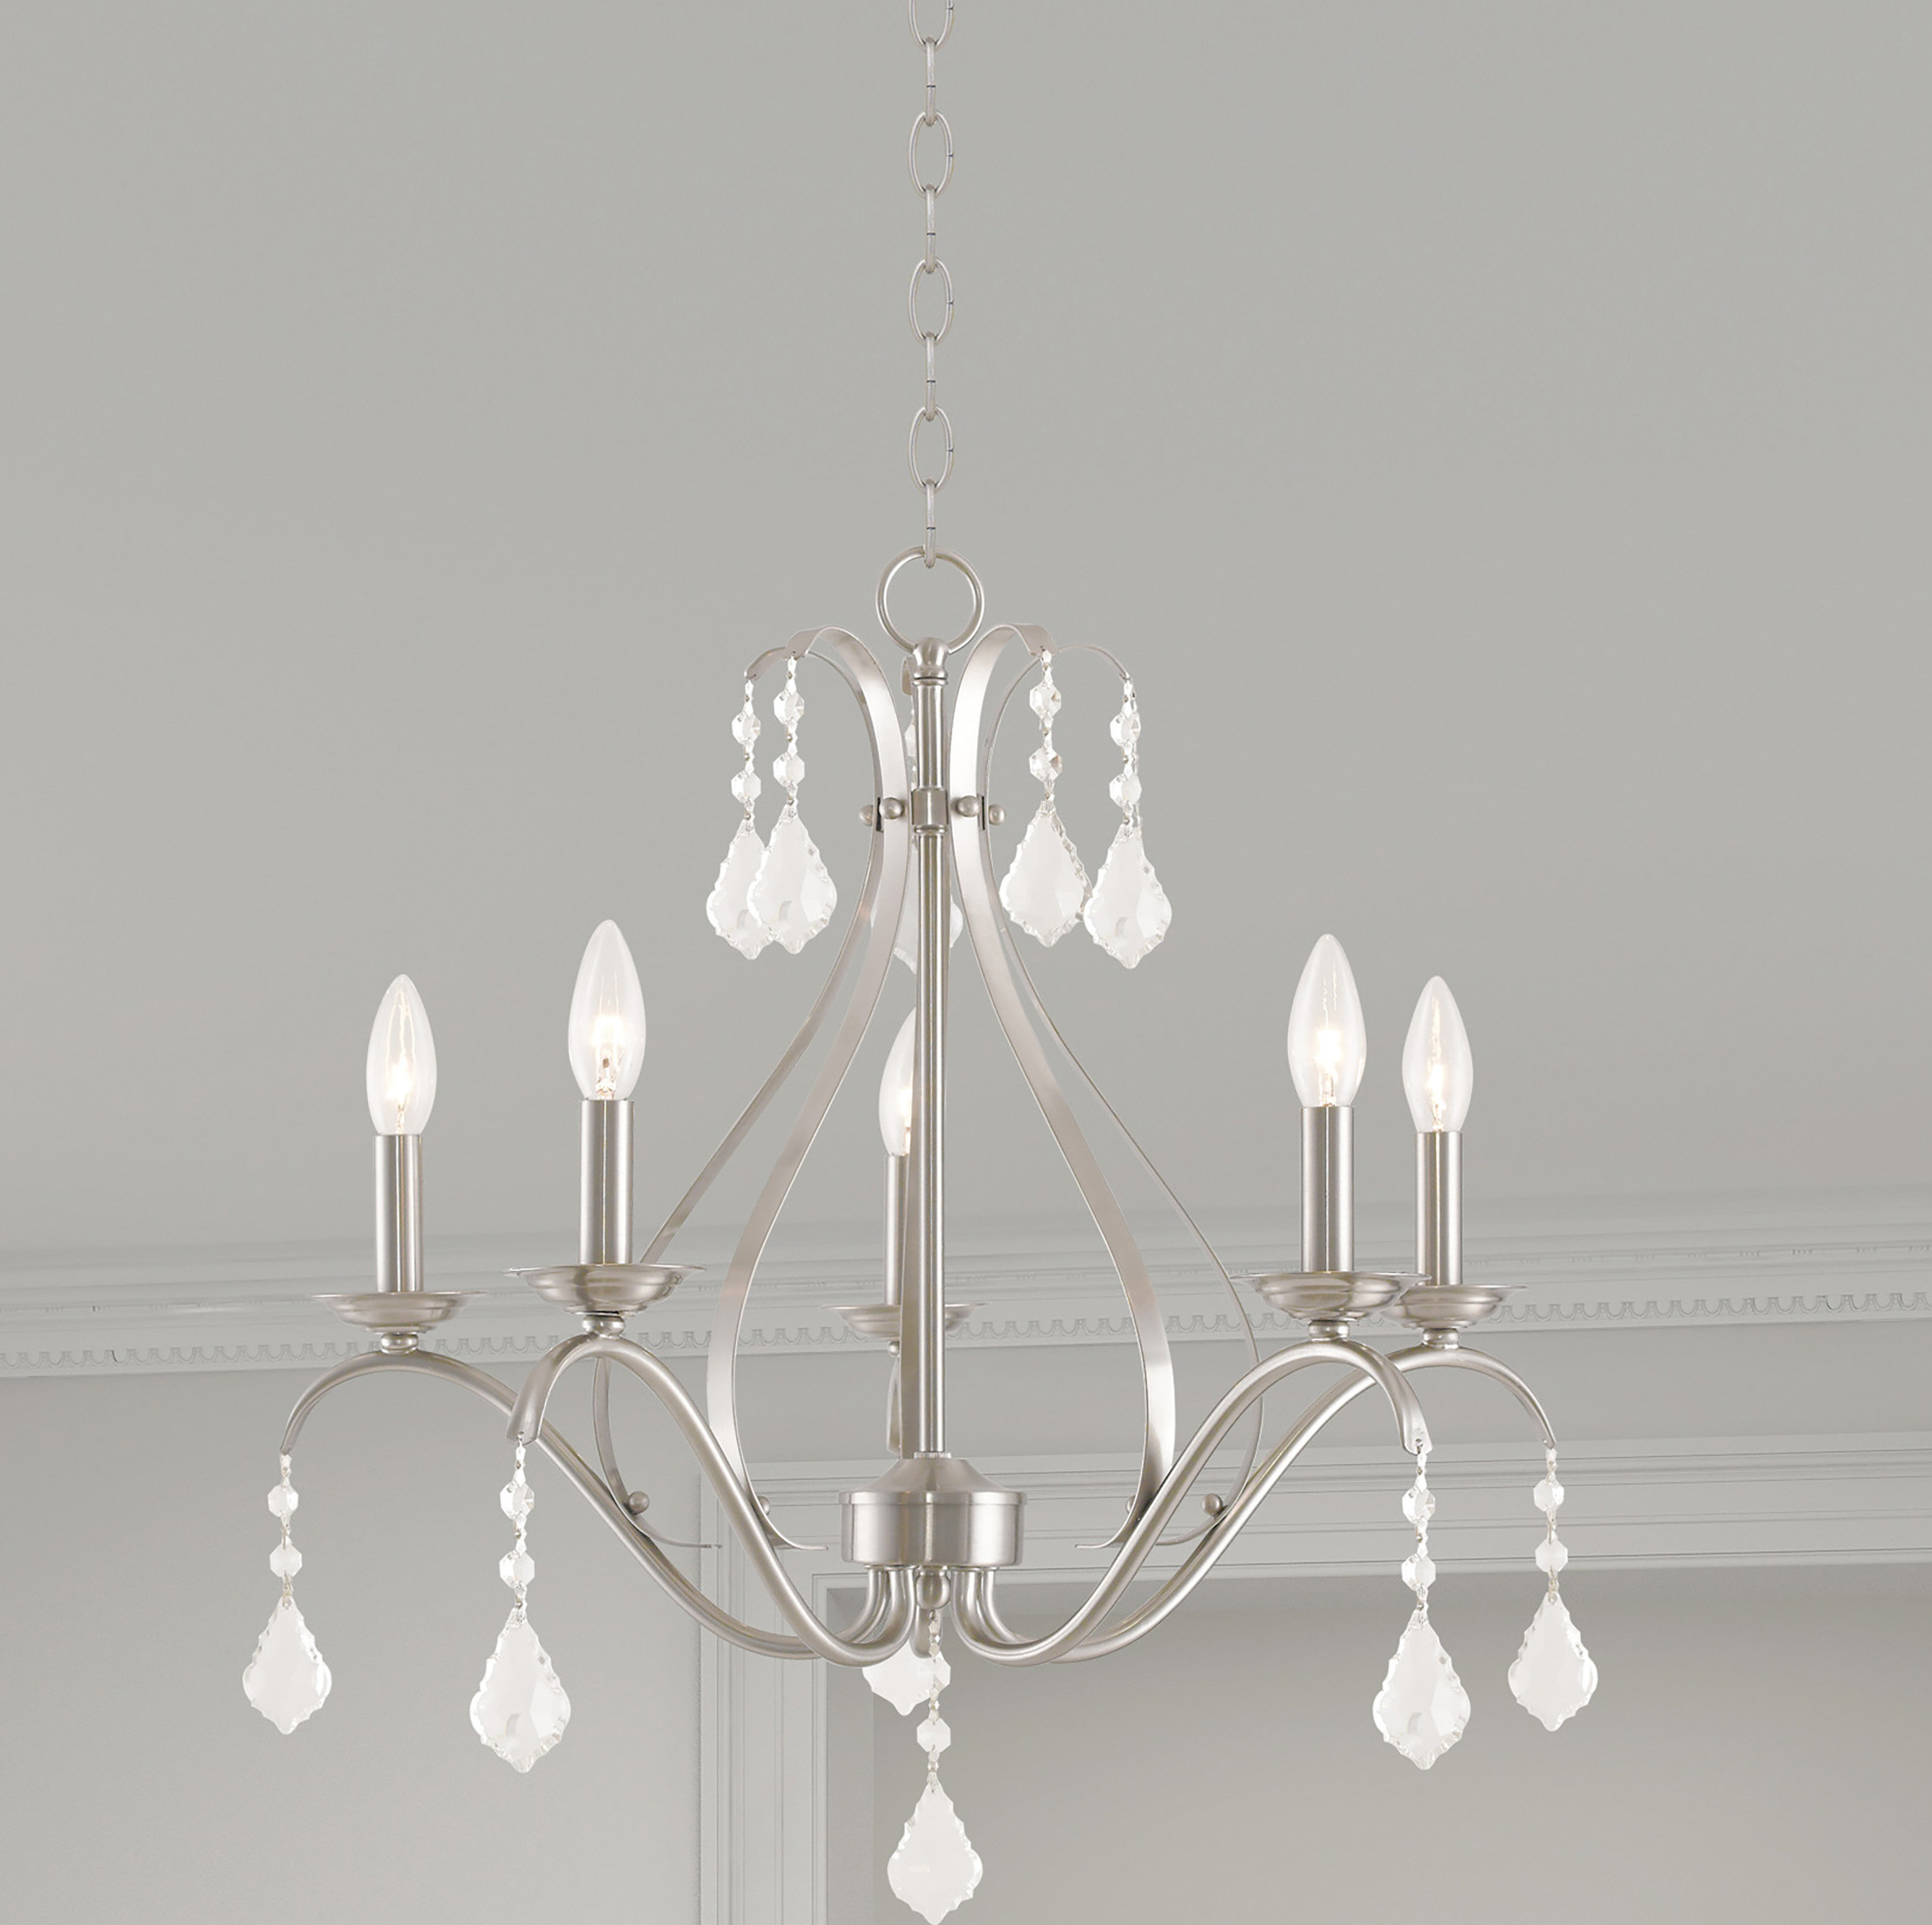 Aria 5 Light Candle Style Chandelier Throughout Hesse 5 Light Candle Style Chandeliers (View 3 of 30)